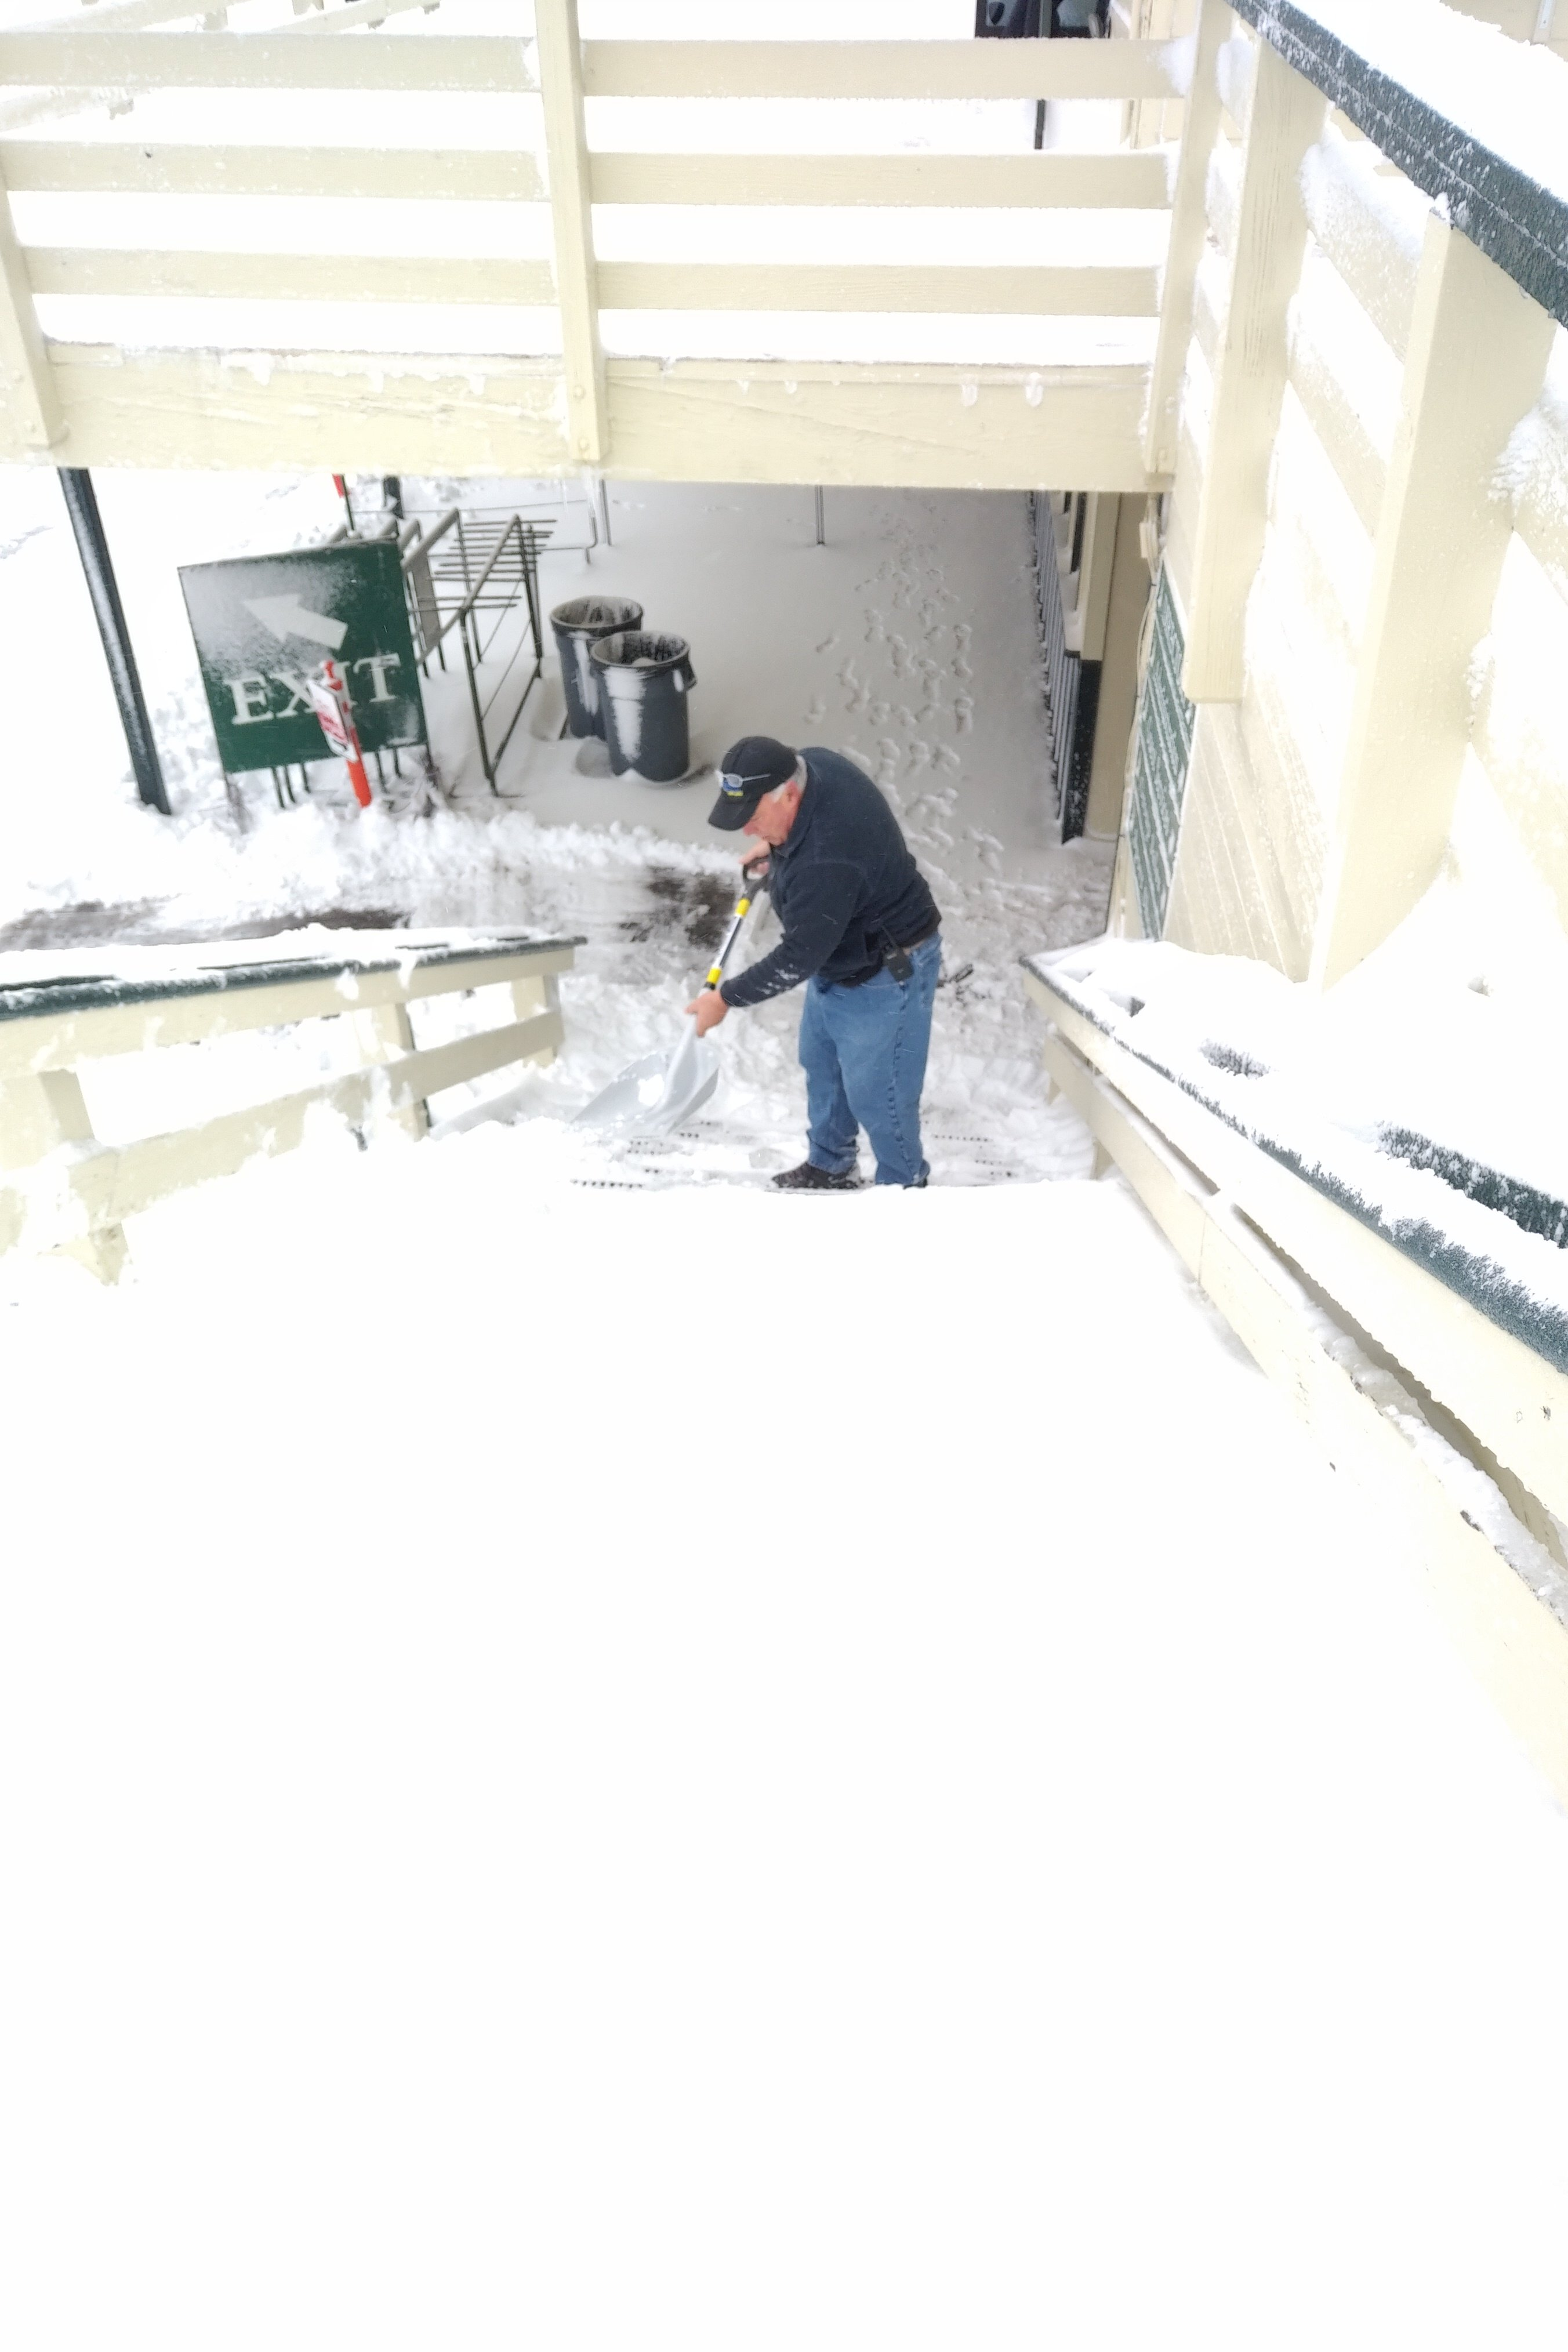 Snow Valley employee shoveling stairs